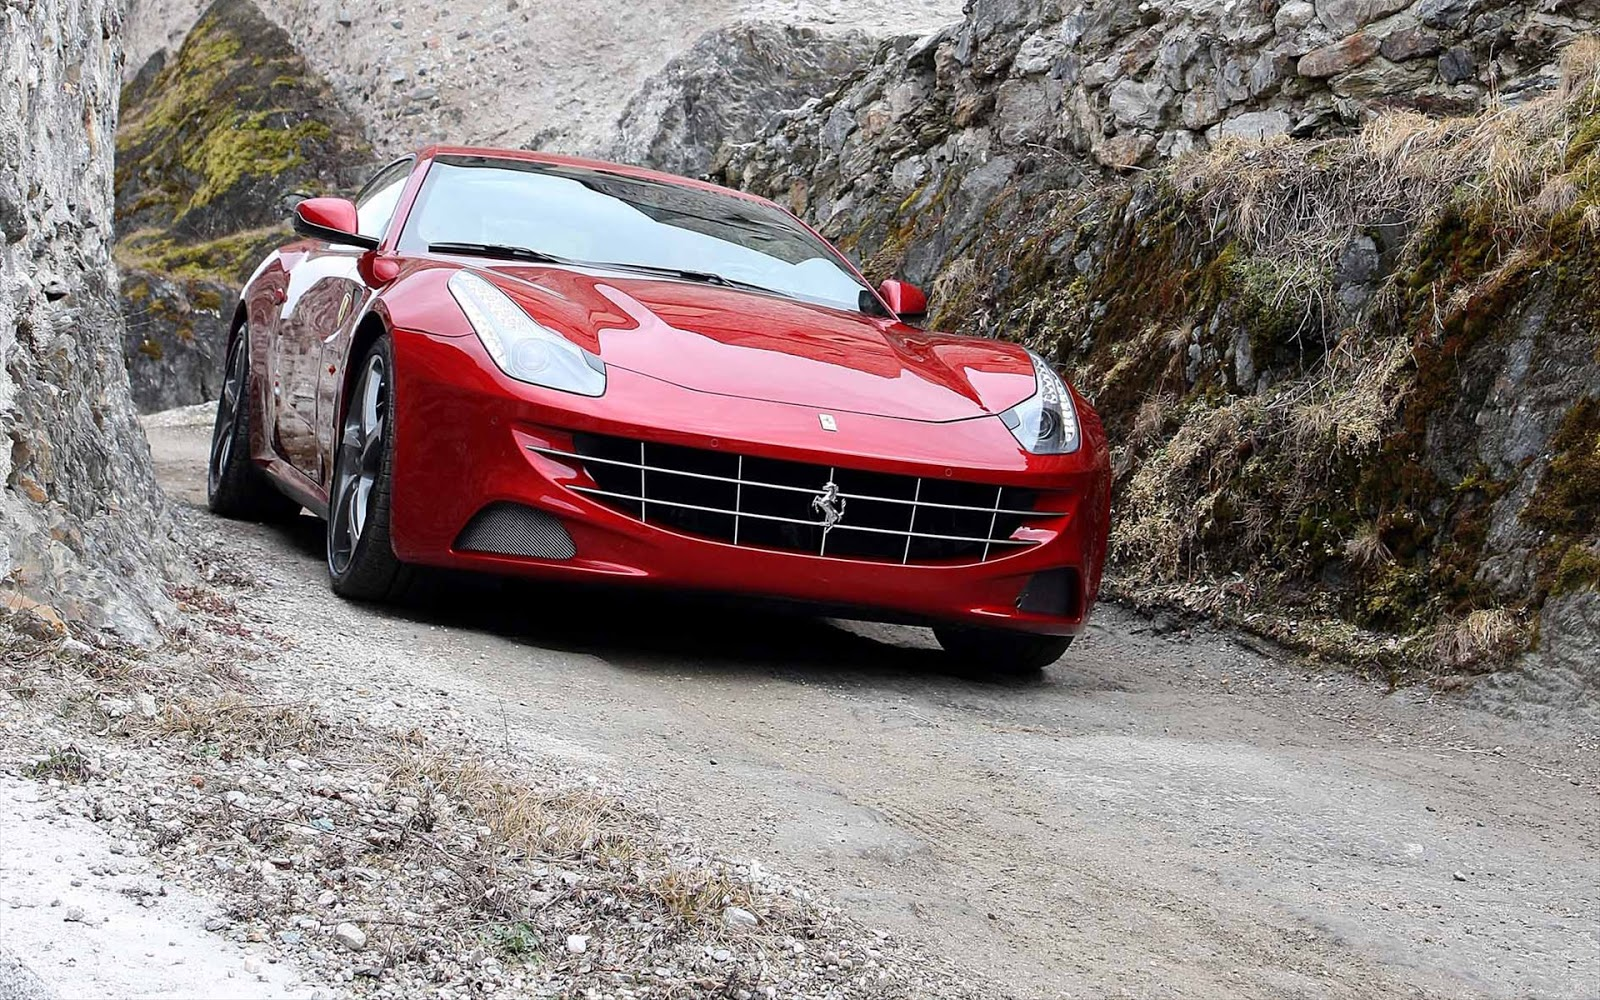 Cars Wallpapers: Cars Wallpapers12: Ferrari FF HD Wallpapers